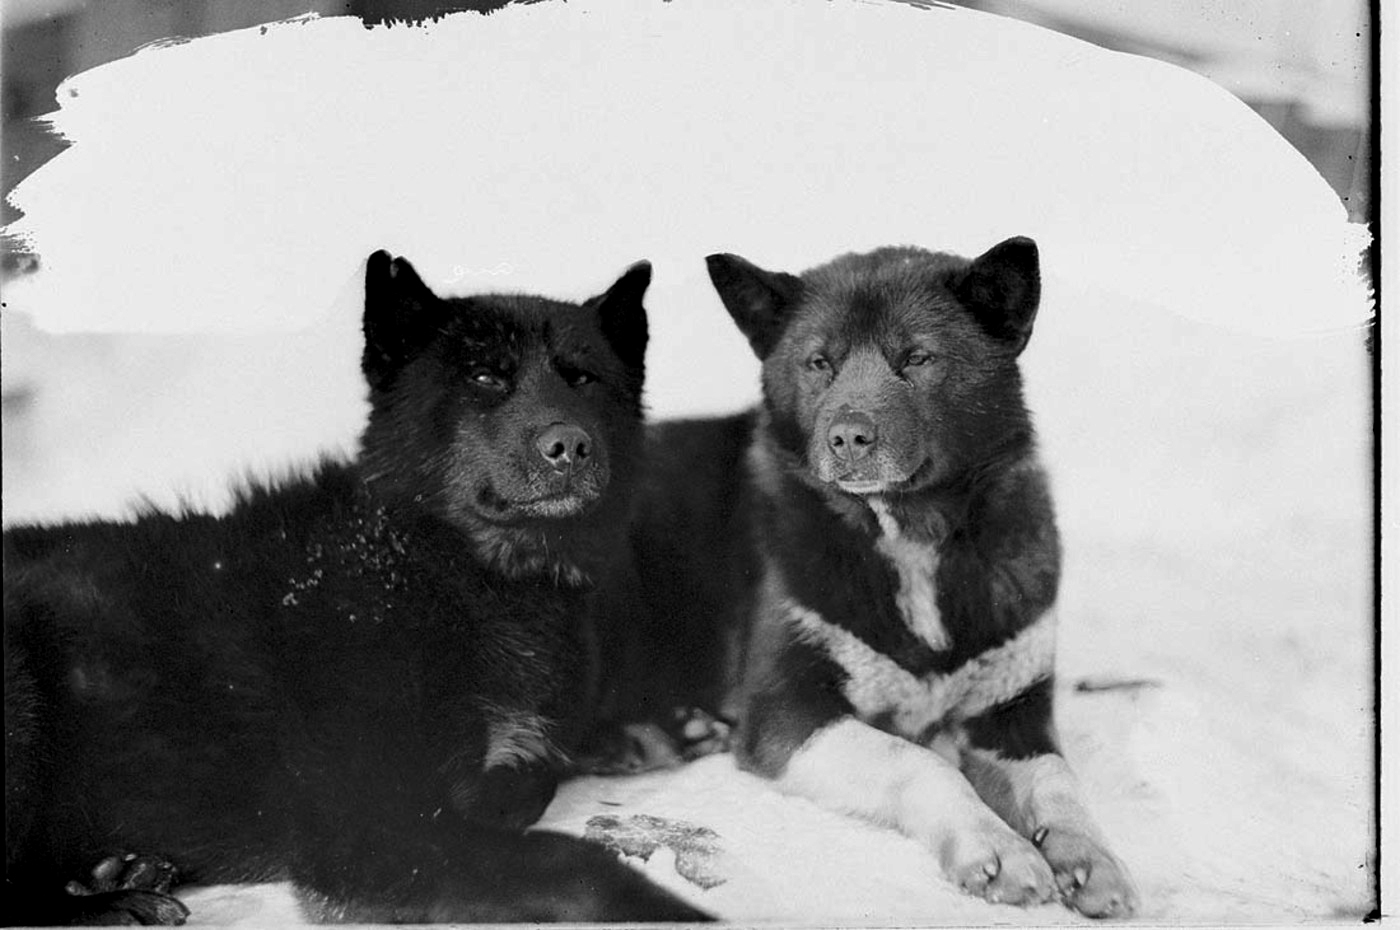 Basilisk and Ginger, sled dogs on the Australian Antarctic Expedition, by Frank Hurley, c. 1912